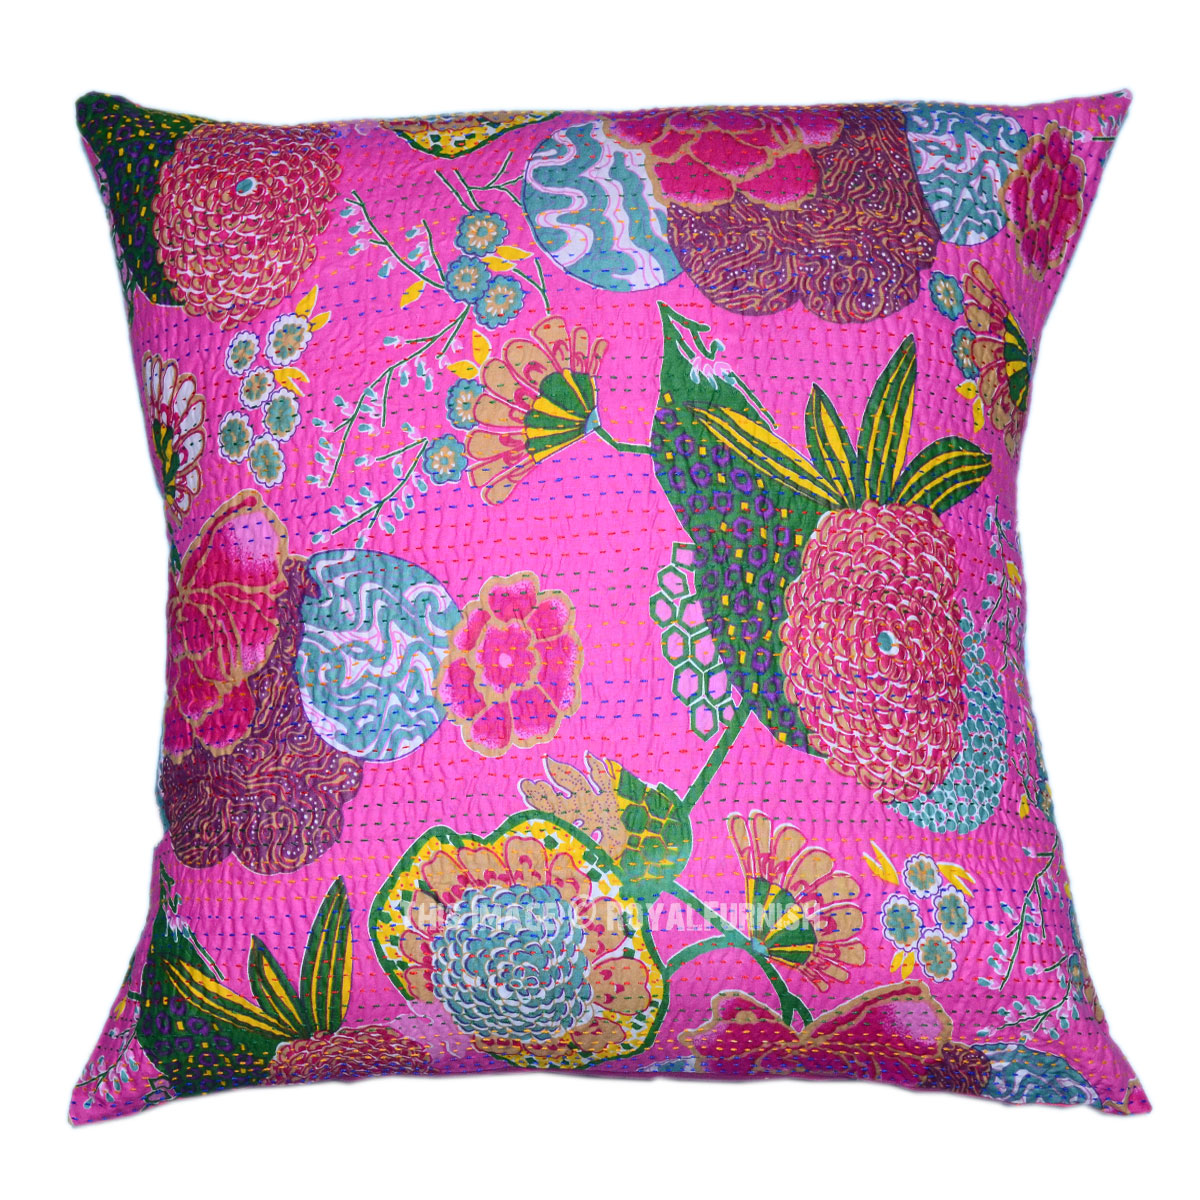 Decorative Pillows Tropical : 24